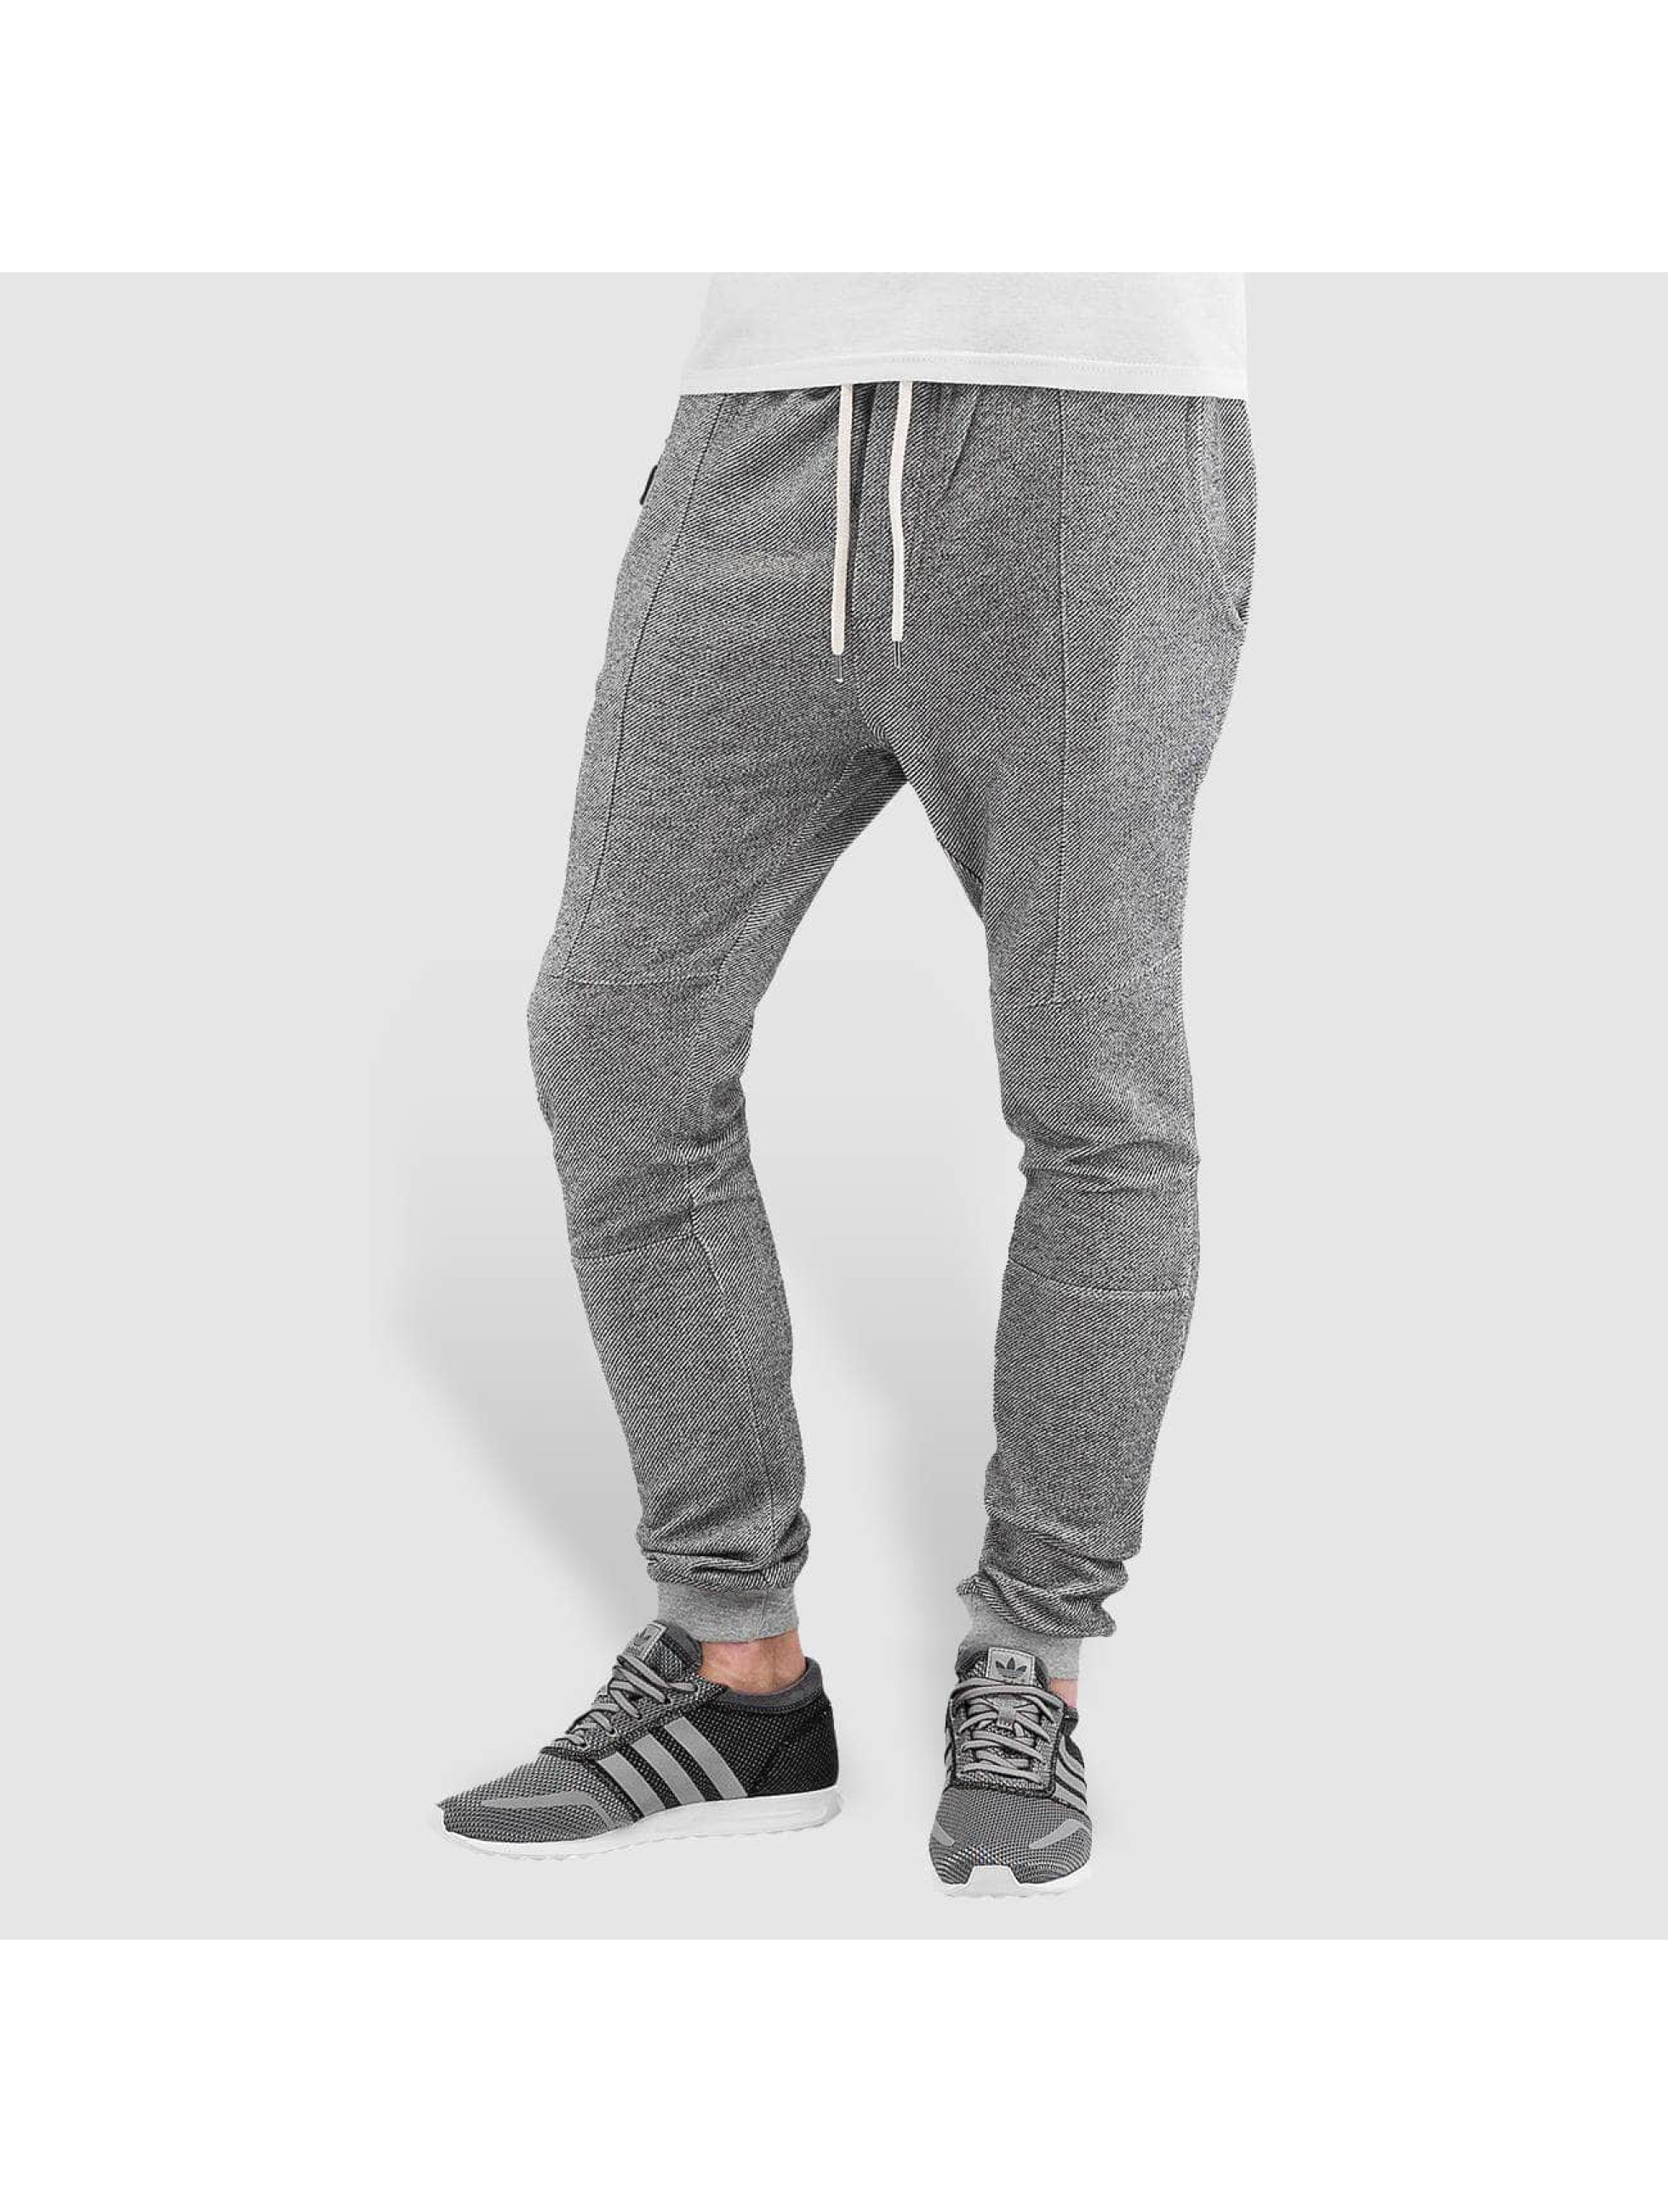 Reell Jeans joggingbroek Sweat grijs